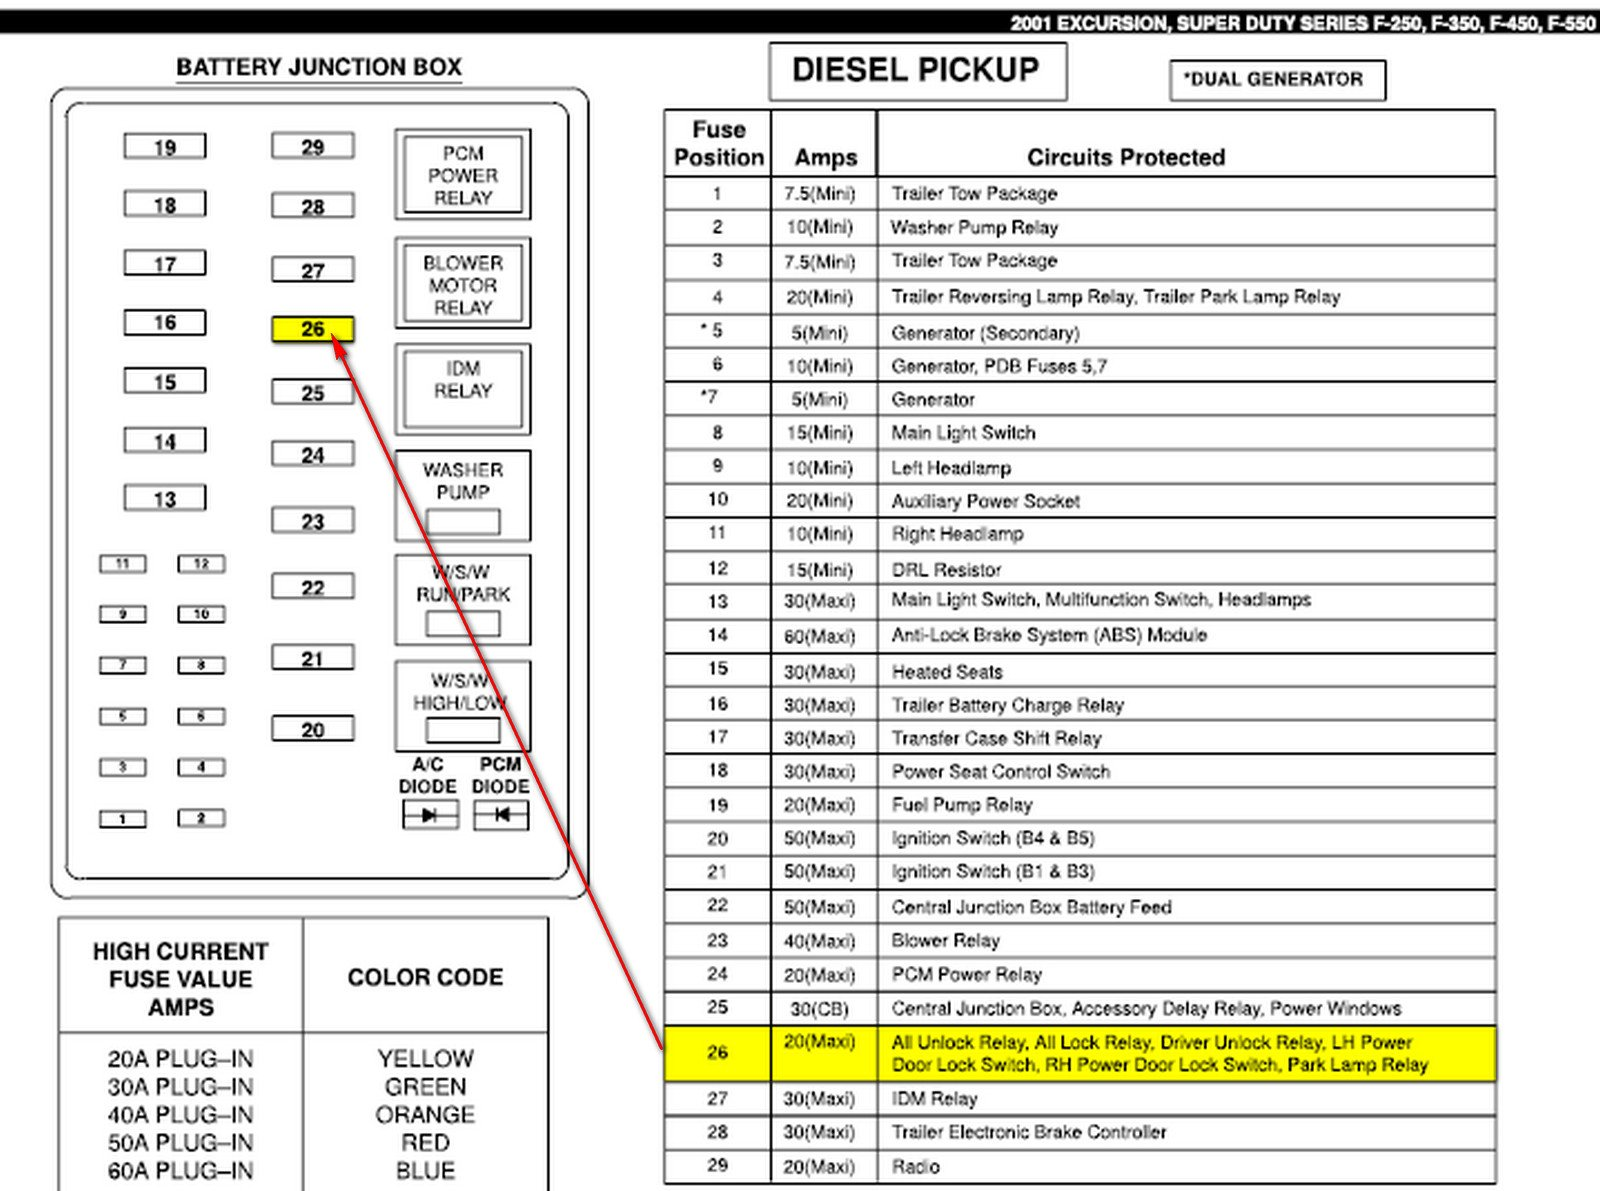 2000 Ford Excursion Wiring Diagram from static-cdn.imageservice.cloud